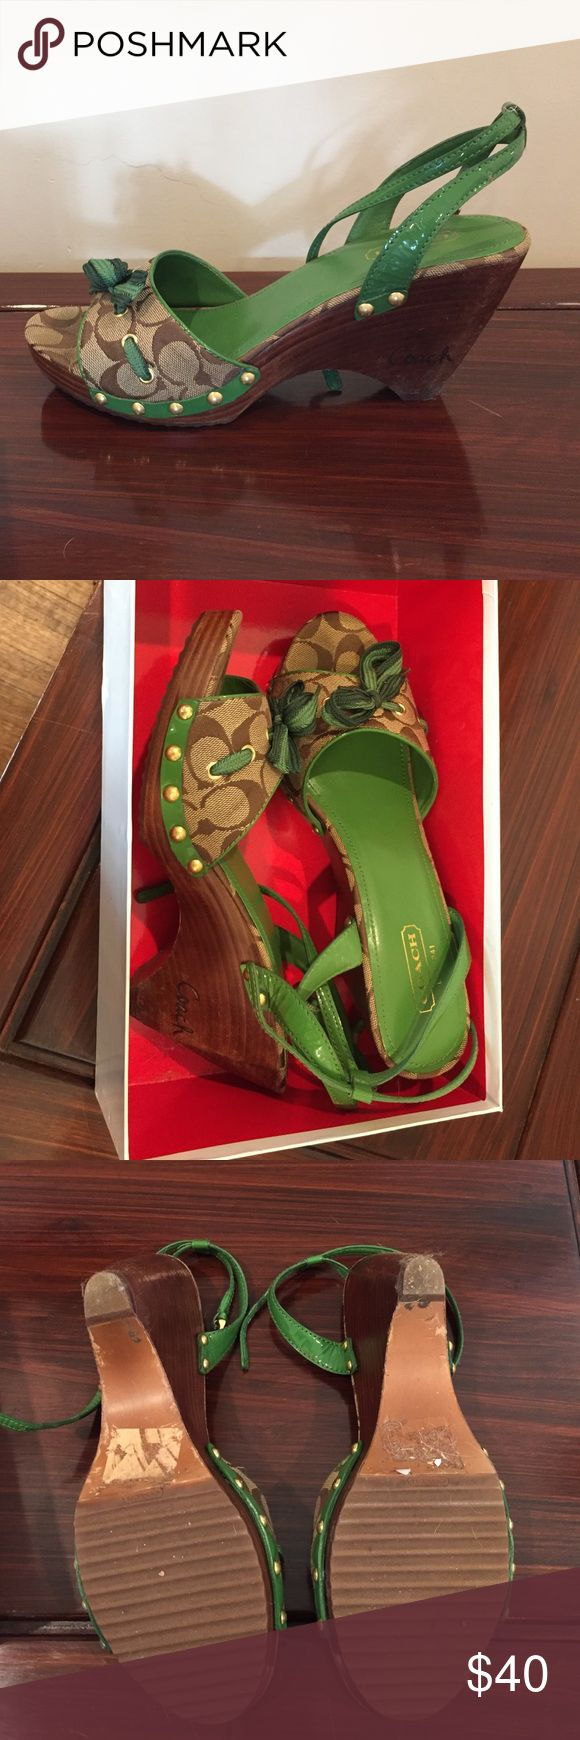 Coach Green wedge Sandals - size 11 Great coach Sandals with green detail and brown coach patterns. Green now on top. Great shoes and very comfortable. I loved them but am not wearing much green any more. Good condition, smoke free home. Size 11 m Coach Shoes Sandals